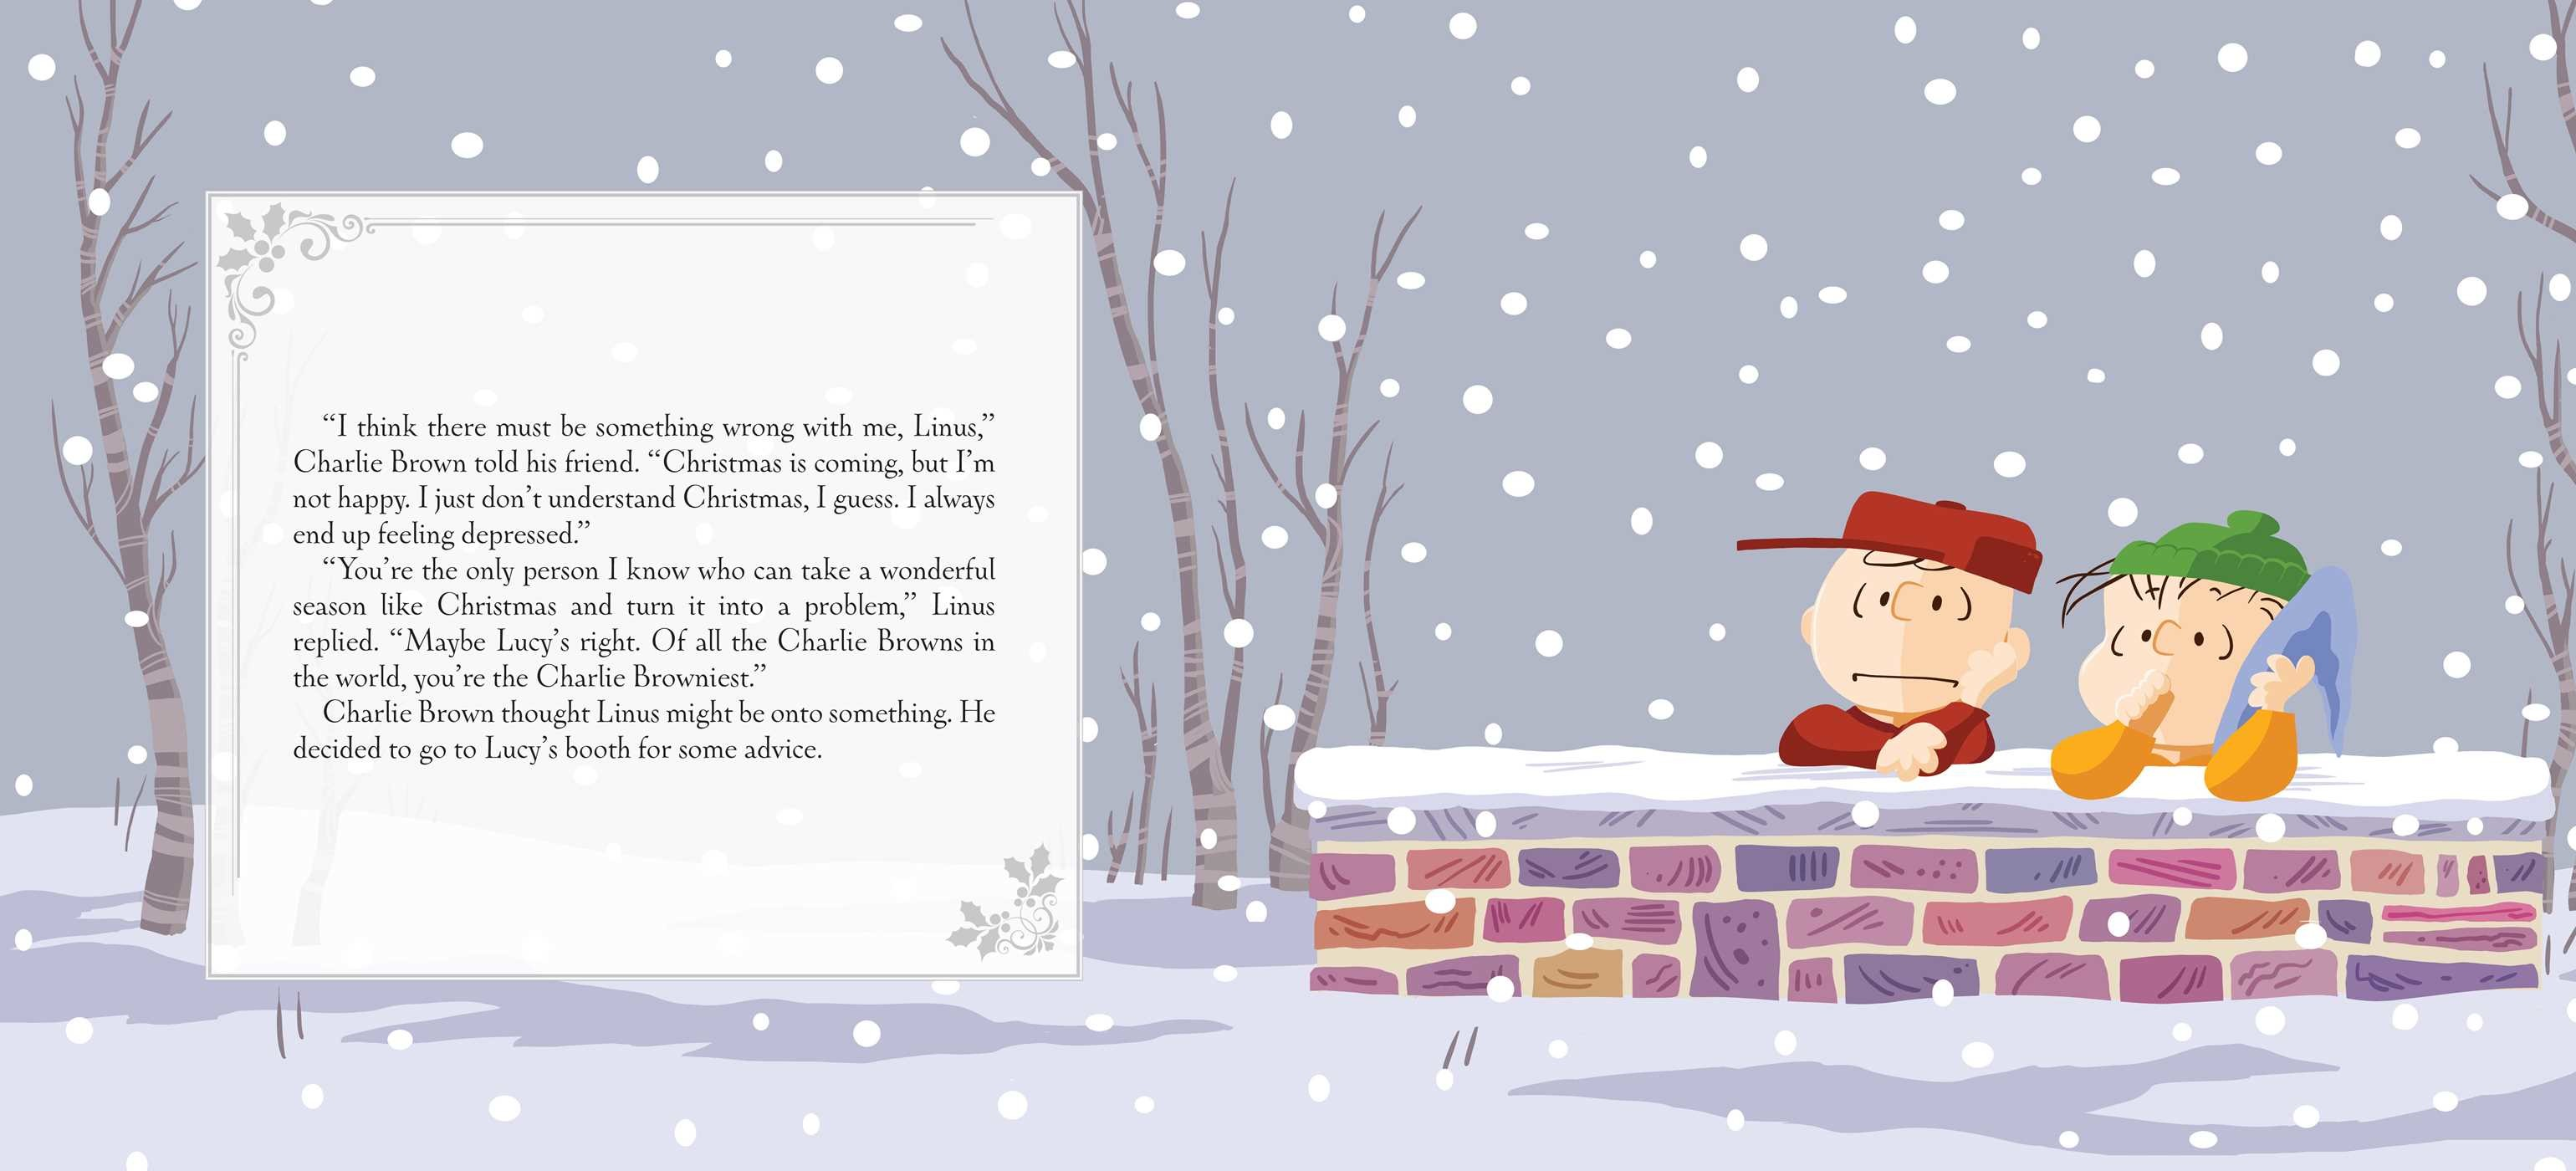 A Charlie Brown Christmas Book.A Charlie Brown Christmas Book By Charles M Schulz